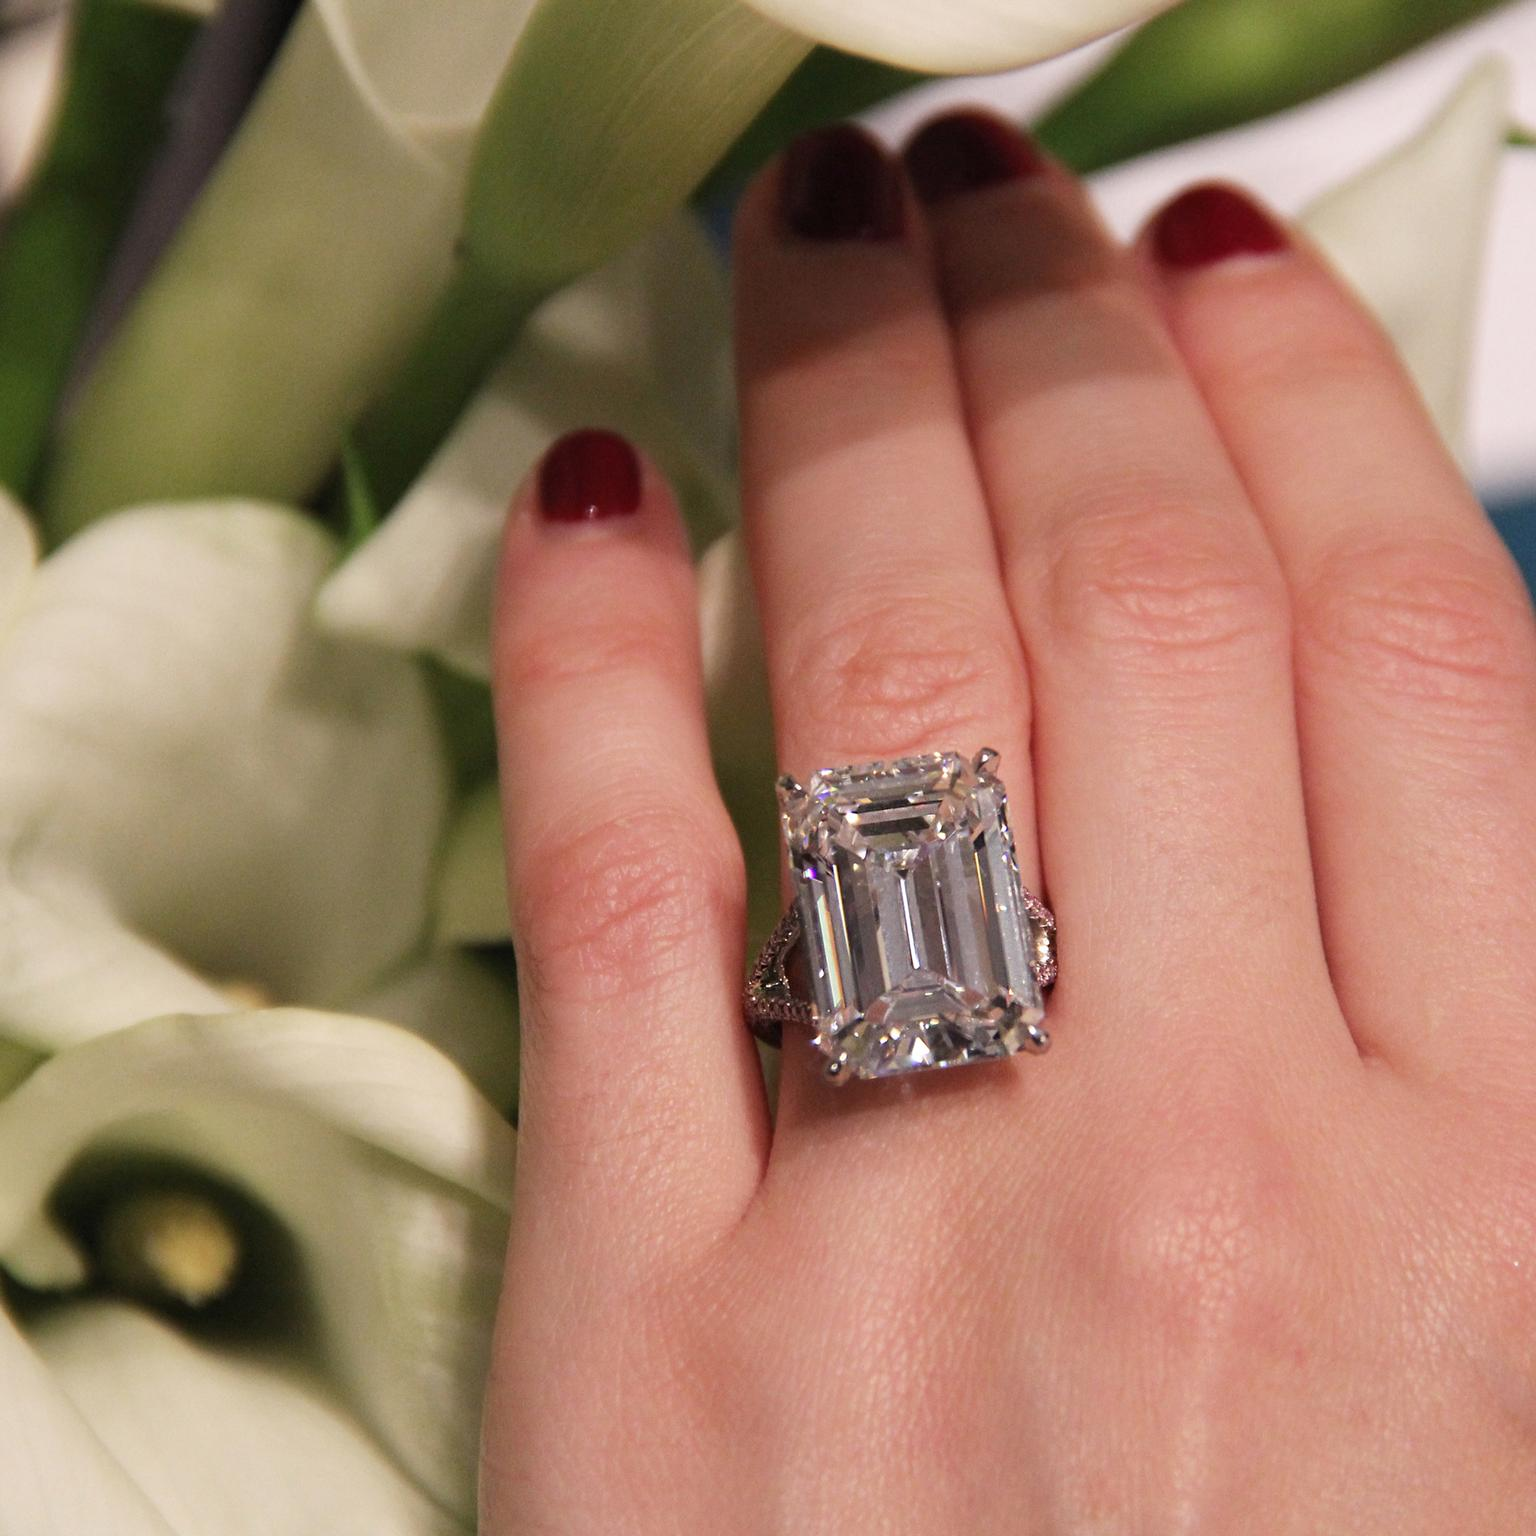 Sotheby's Diamonds 20.47-carat emerald cut diamond Arris ring